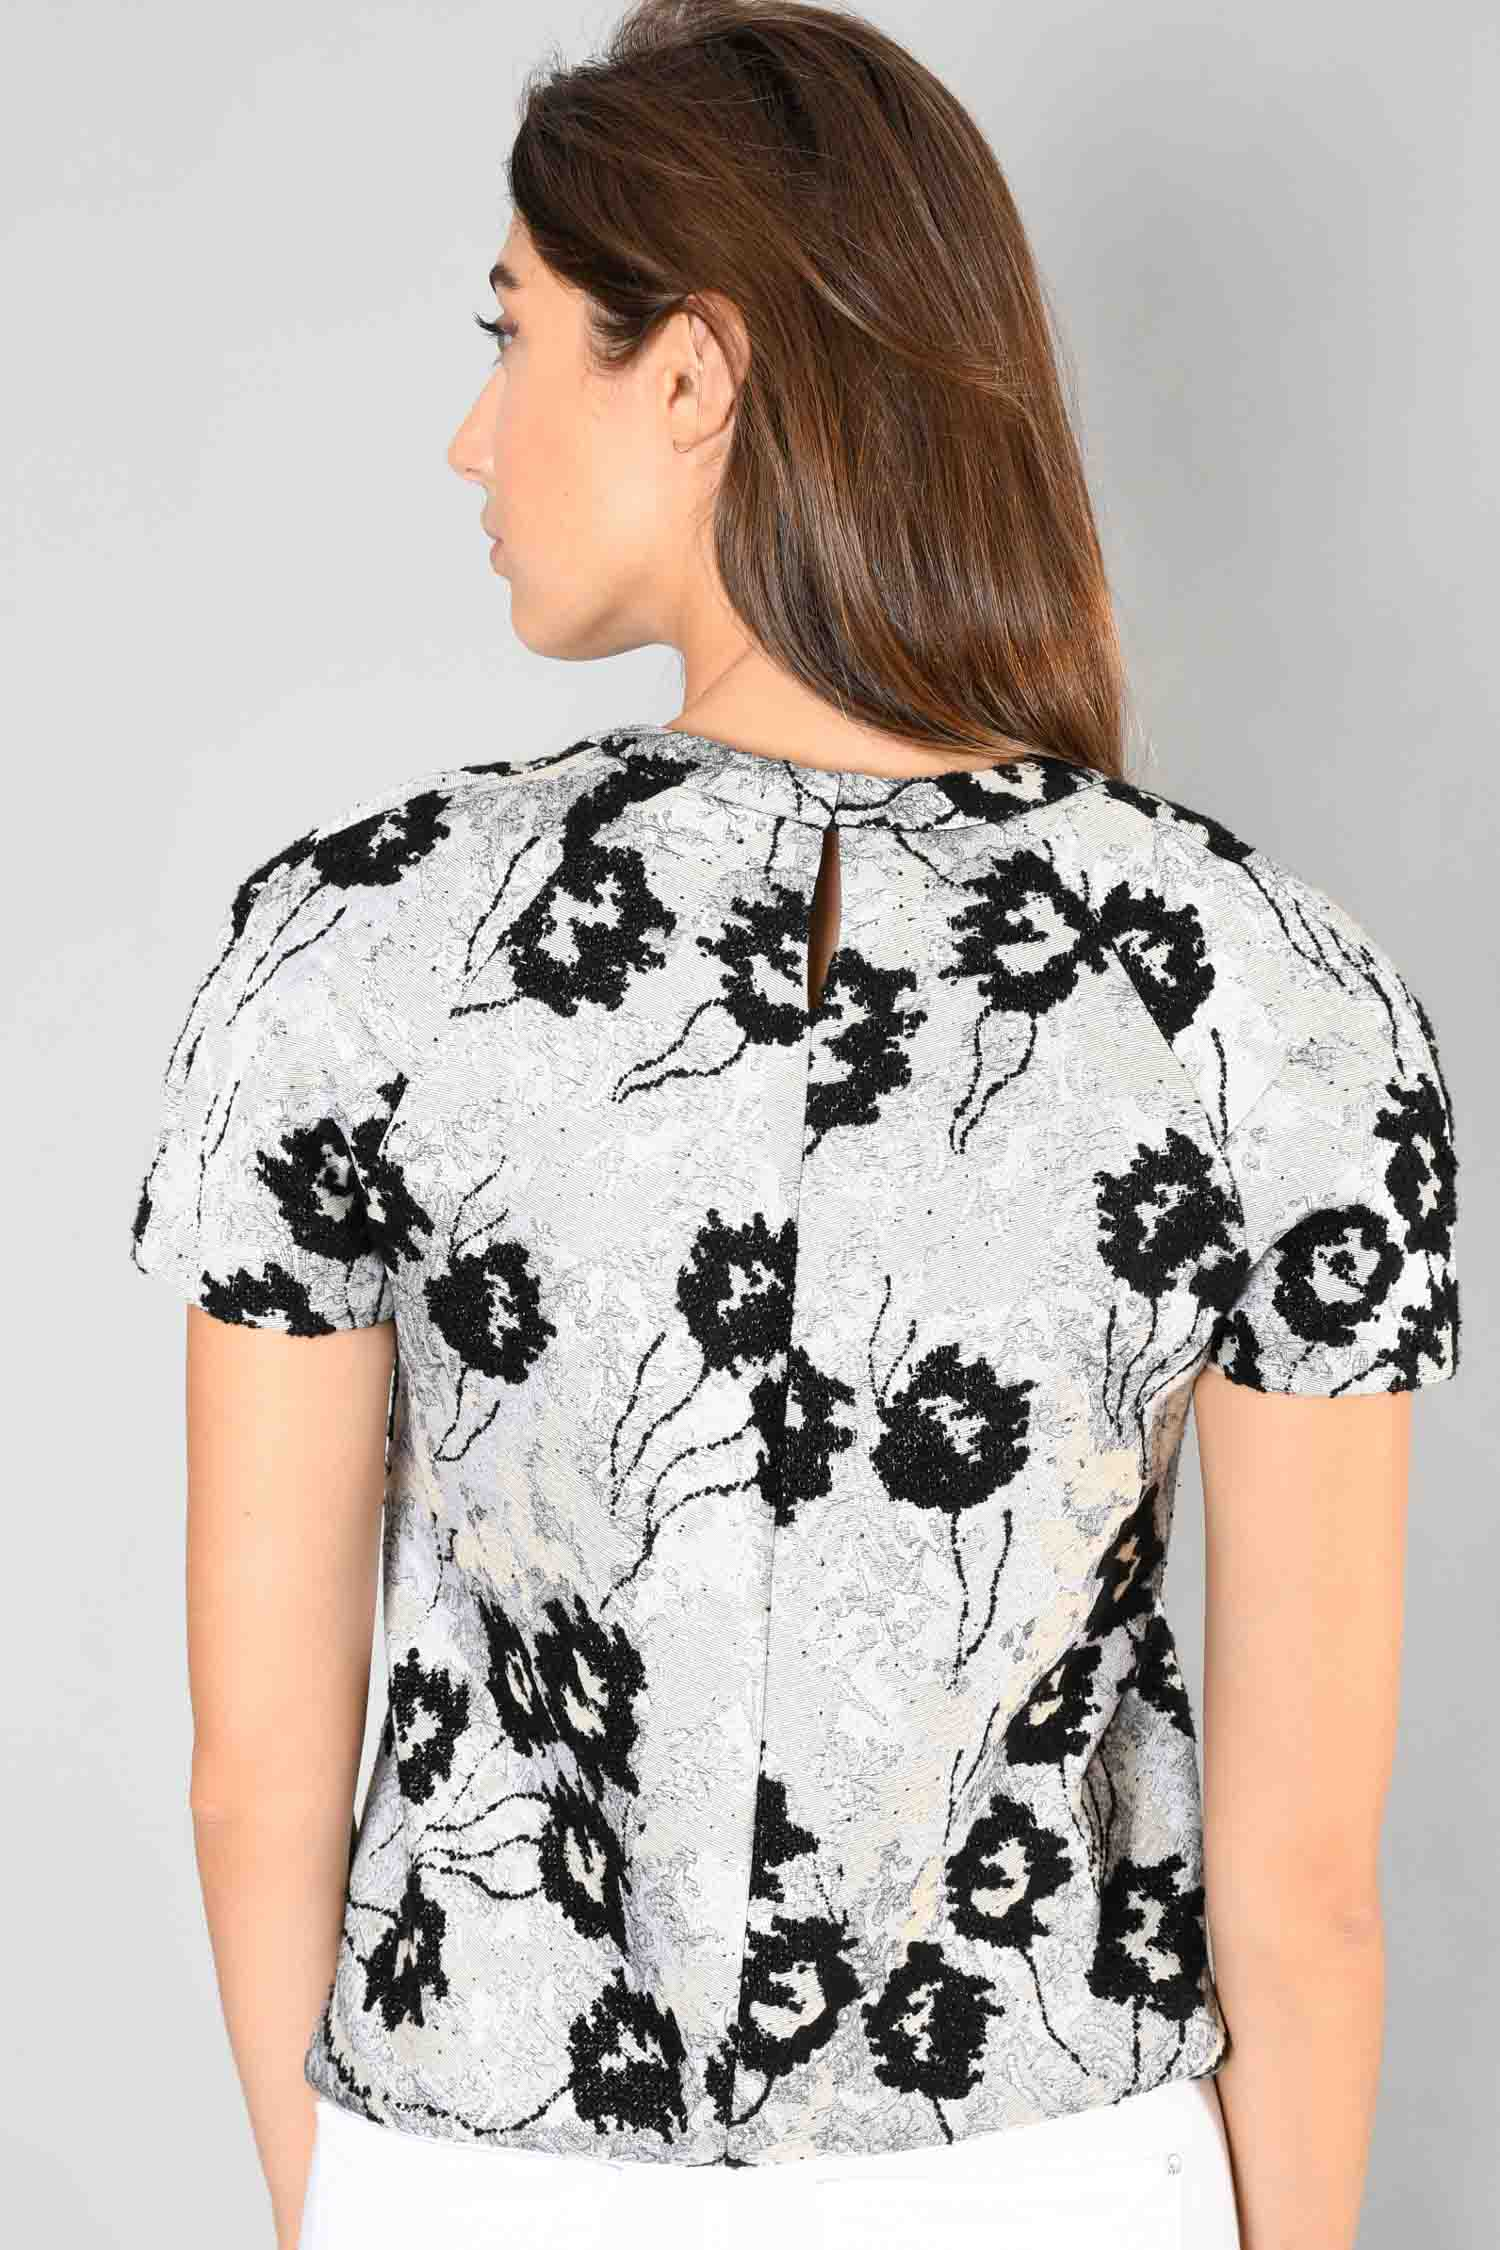 BCBG Runway Grey/Black Embroidered Top Size XS